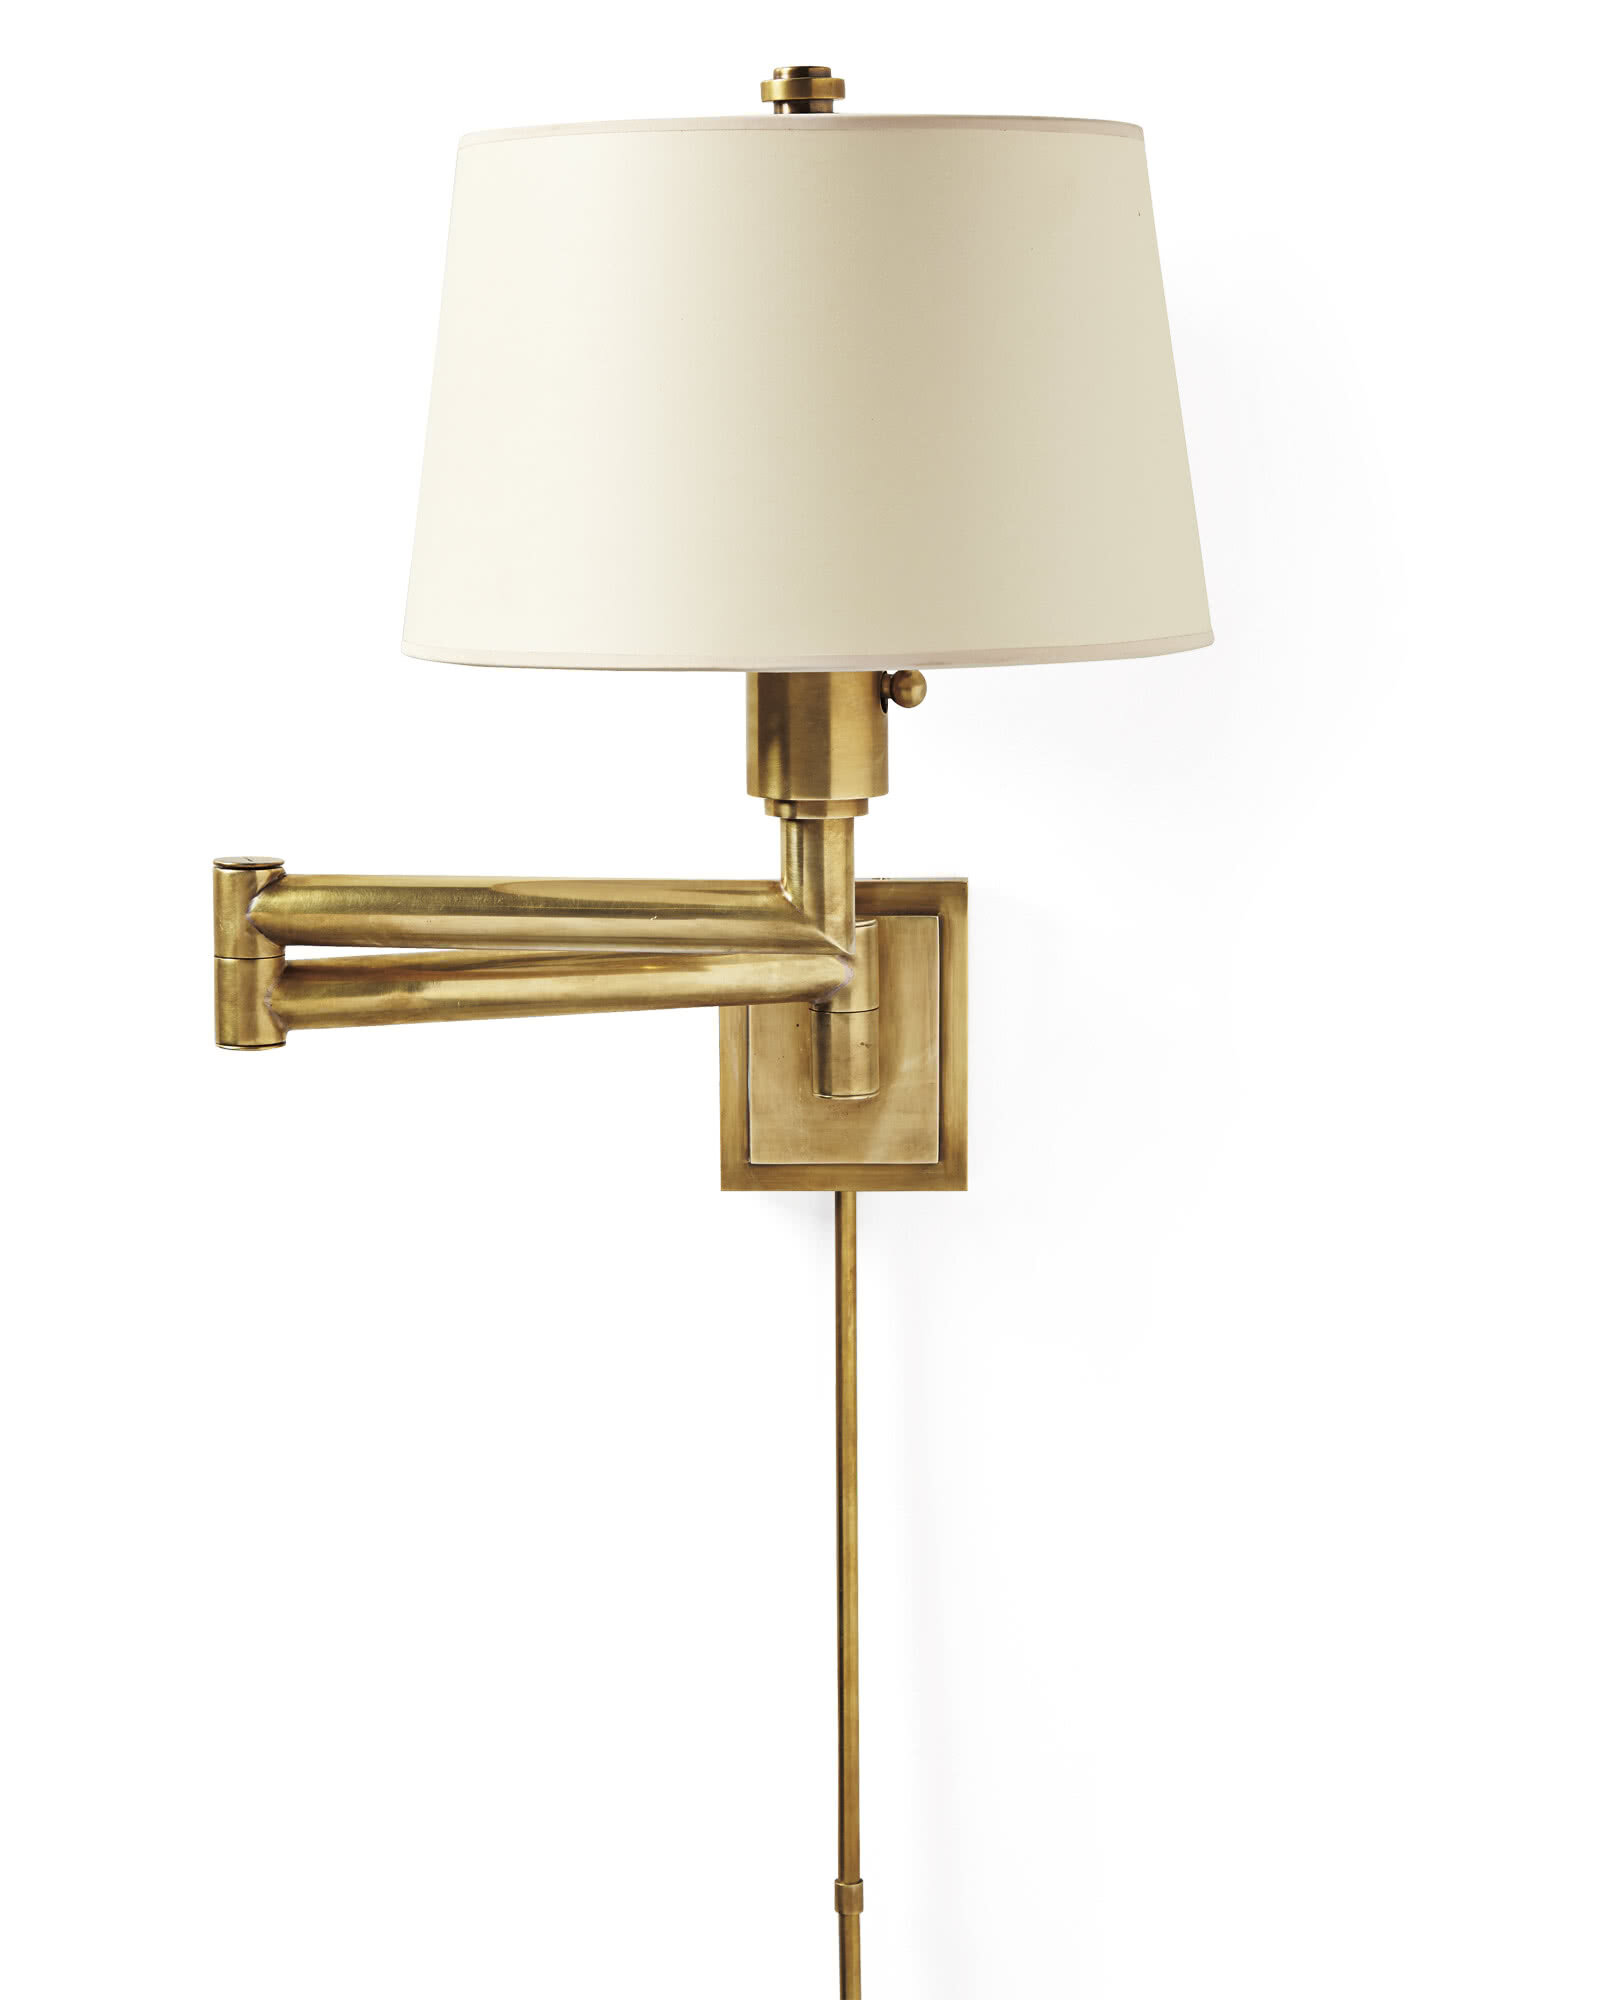 Lighting_Mason_Swing_Arm_Sconce_Brass_MV_0017_Crop_SH.jpg